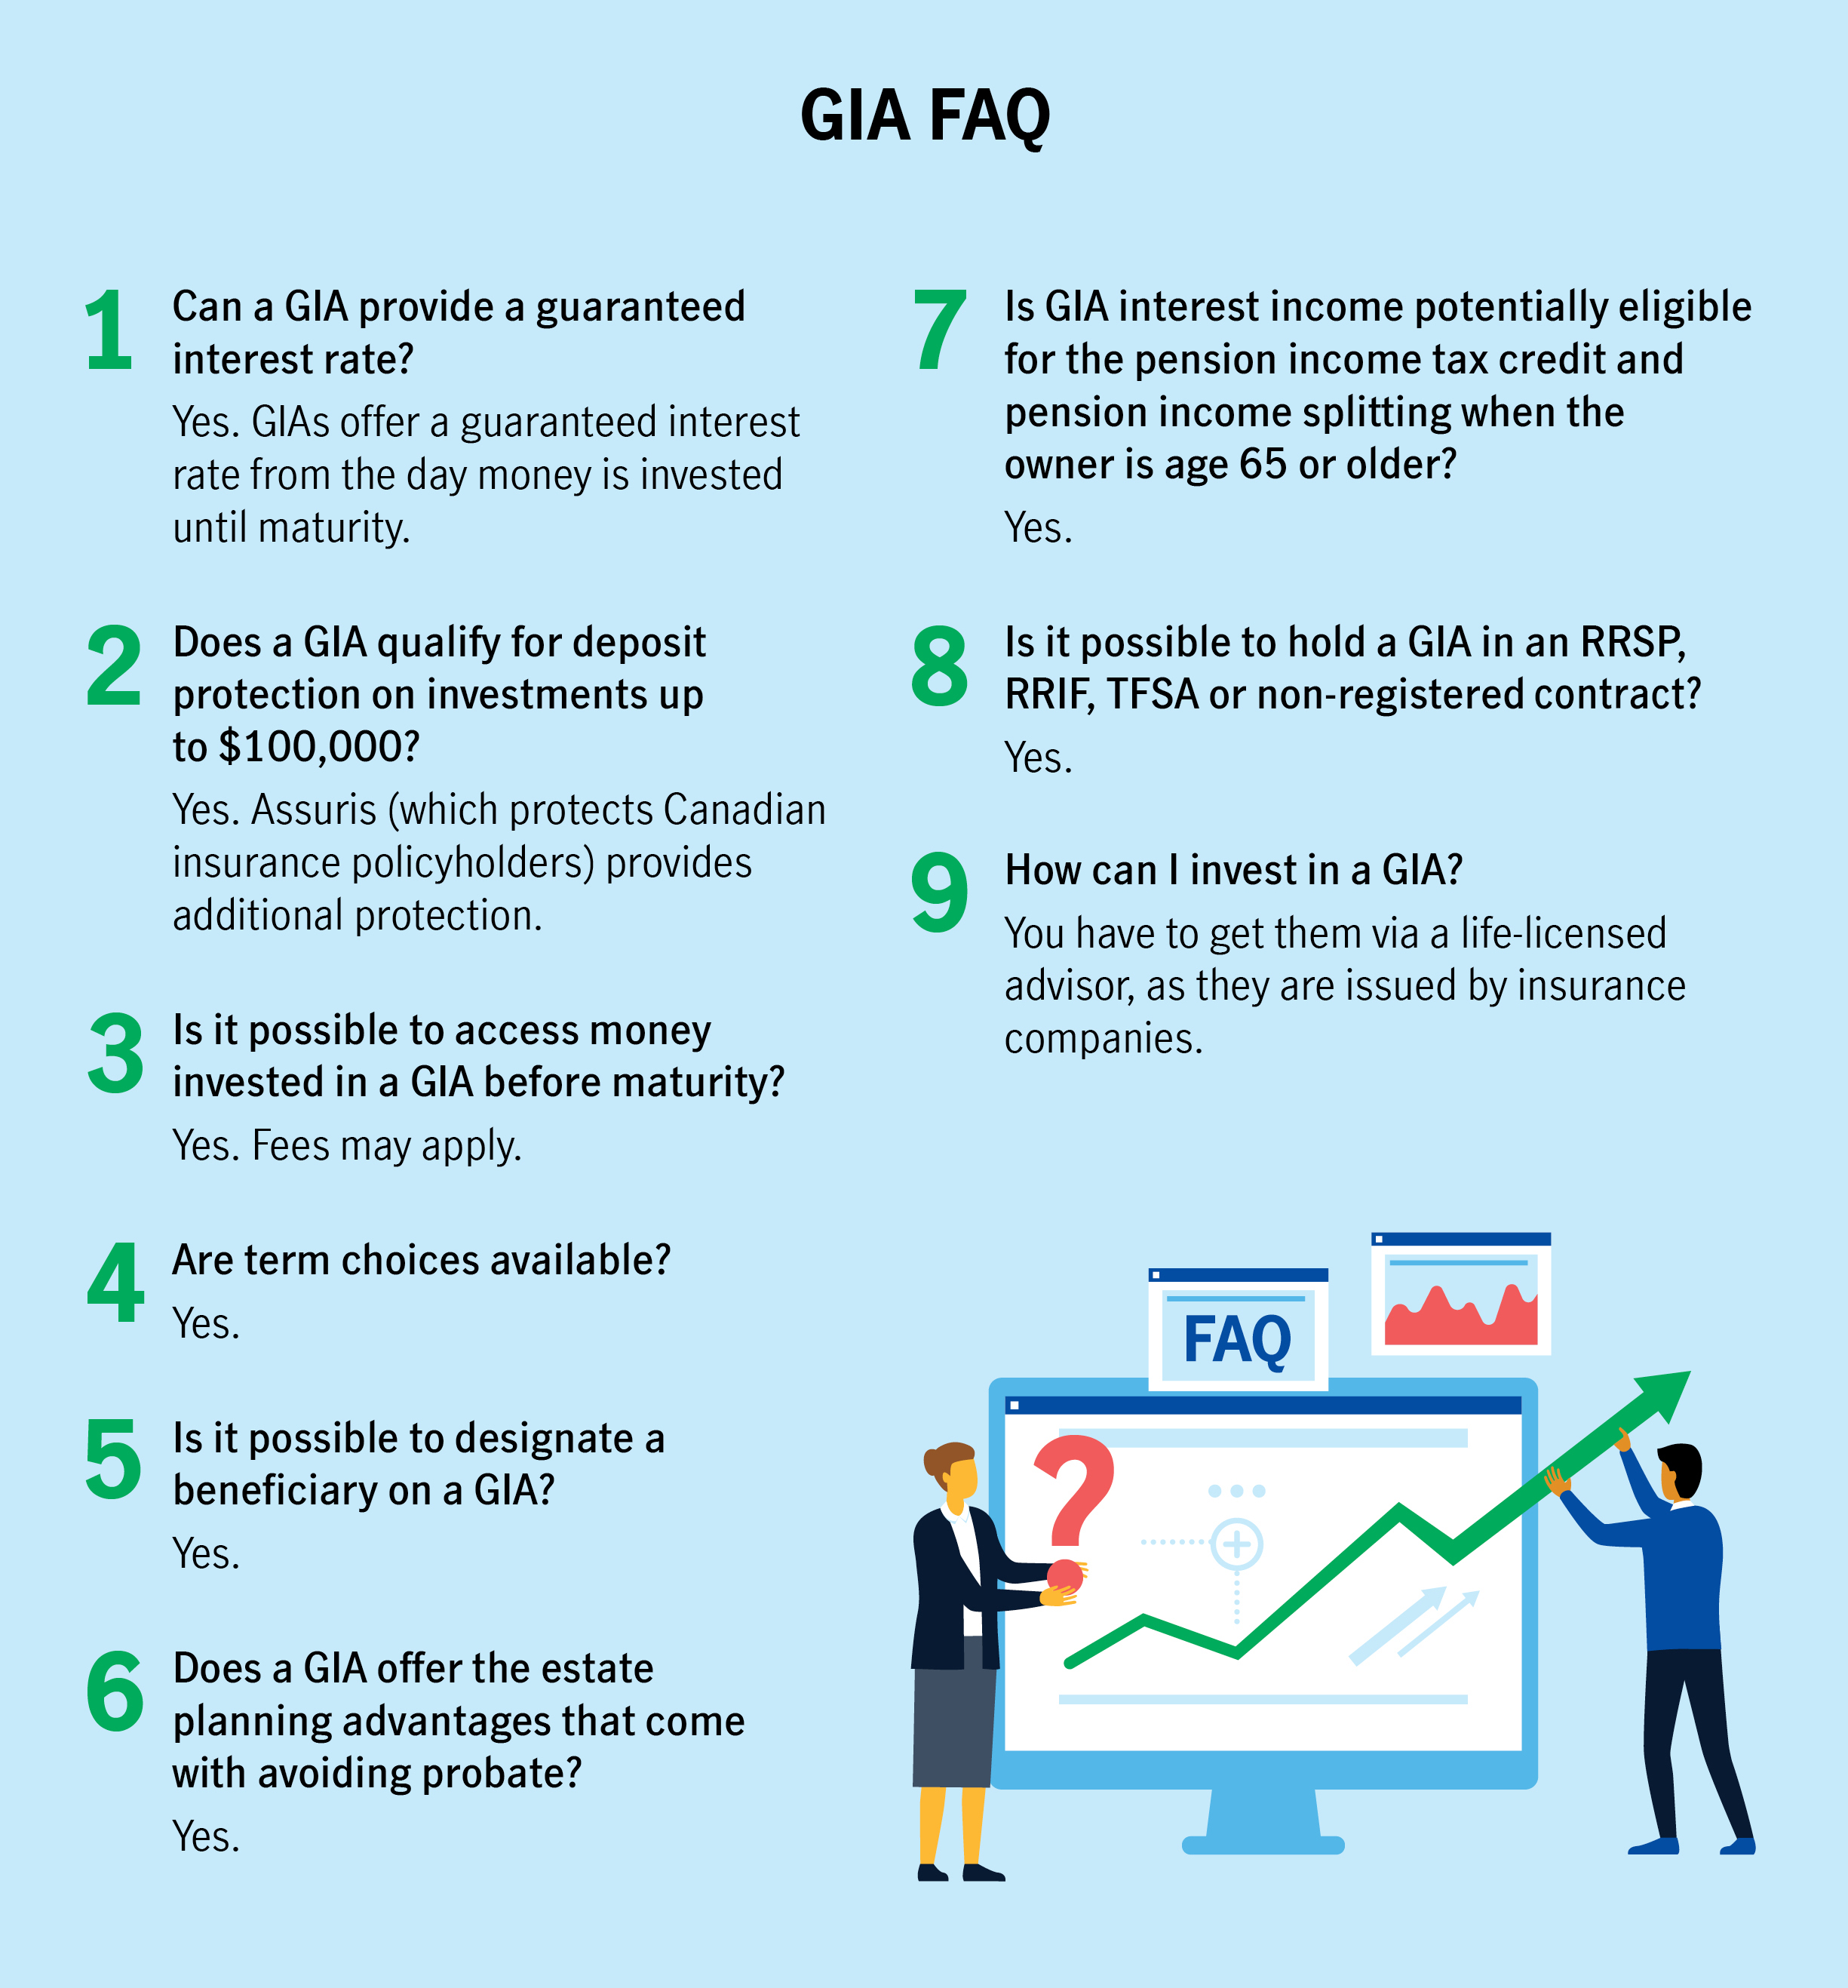 GIA FAQ  1.Can a GIA provide a guaranteed interest rate? Yes. GIAs offer a guaranteed interest rate from the day money is invested until maturity.  2.Does a GIA qualify for deposit protection on investments up to $100,000? Yes. Assuris (which protects Canadian insurance policyholders) provides additional protection.  3.Is it possible to access money invested in a GIA before maturity? Yes. Fees may apply. 4.Are term choices available? Yes.  5.Is it possible to designate a beneficiary on a GIA? Yes. 6.Does a GIA offer the estate planning advantages that come with avoiding probate? Yes. 7.Is GIA interest income potentially eligible for the pension income tax credit and pension income splitting when the owner is age 65 or older? Yes. 8.Is it possible to hold a GIA in an RRSP, RRIF, TFSA or non-registered contract? Yes.     9.How can I invest in a GIA? You have to get them via a life-licensed advisor, as they are issued by insurance companies.